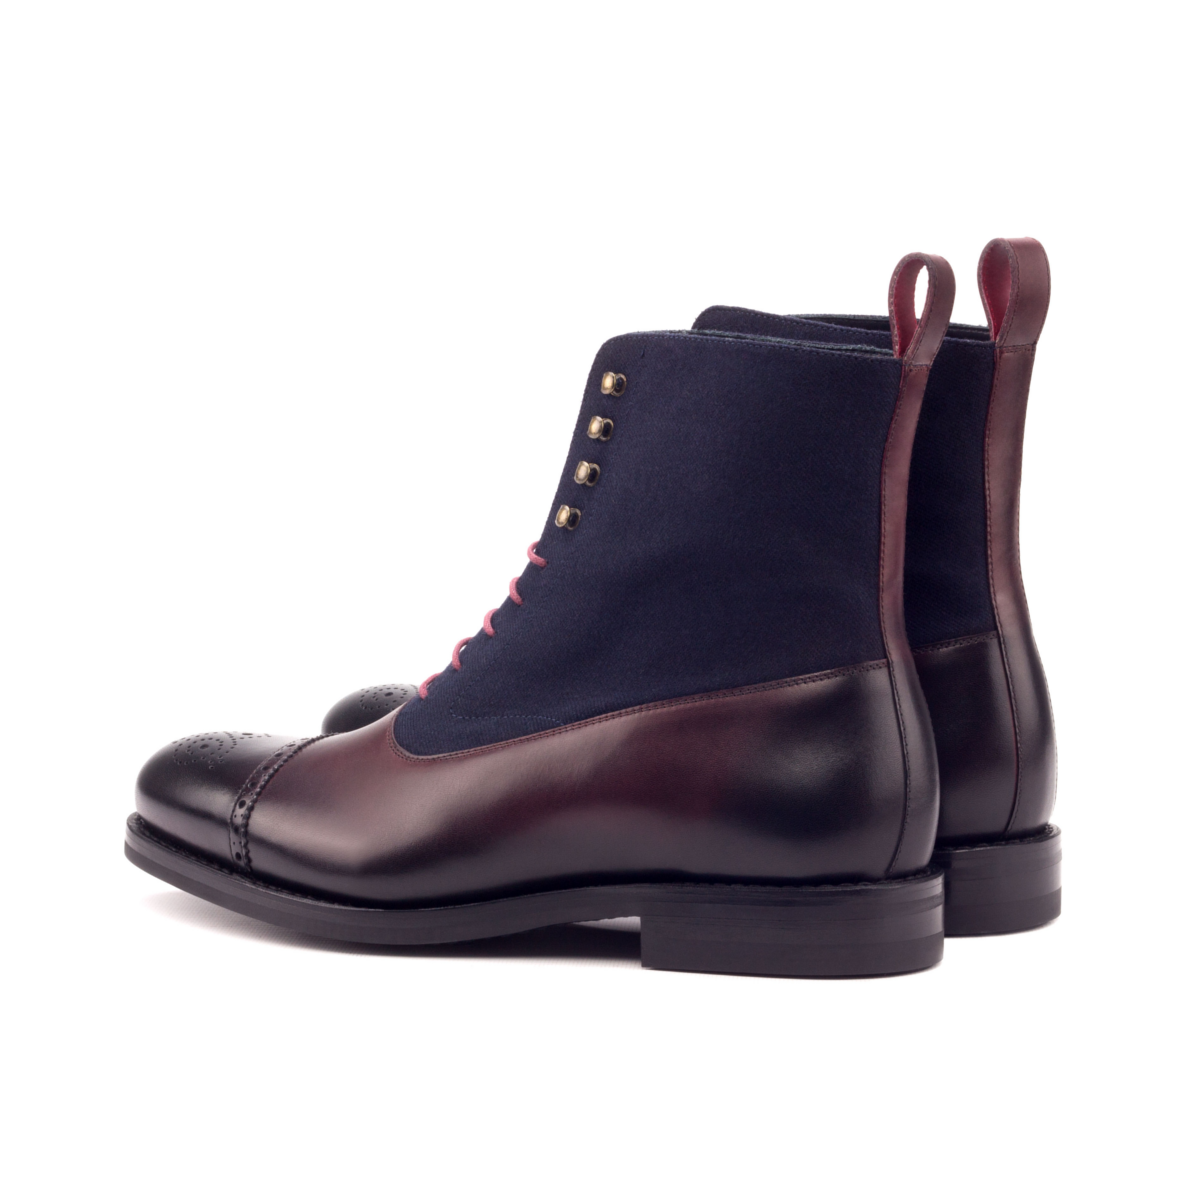 Balmoral boot painted calf brown and suede